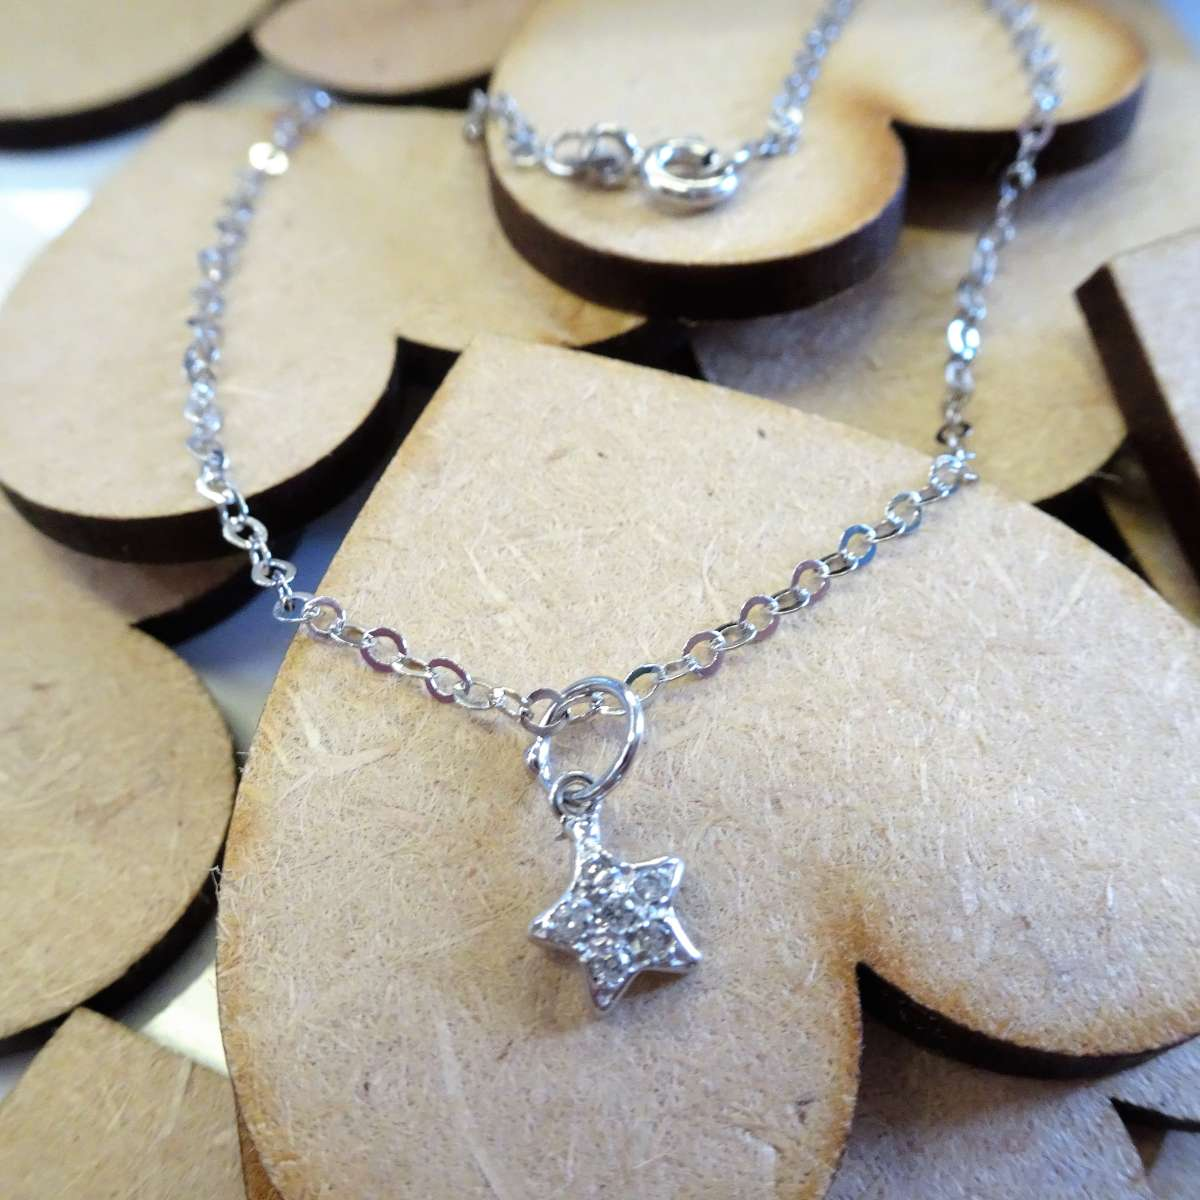 Alterative image for 9ct White Gold Hammered Trace Anklet with CZ Star Charm - 9.5 Inches